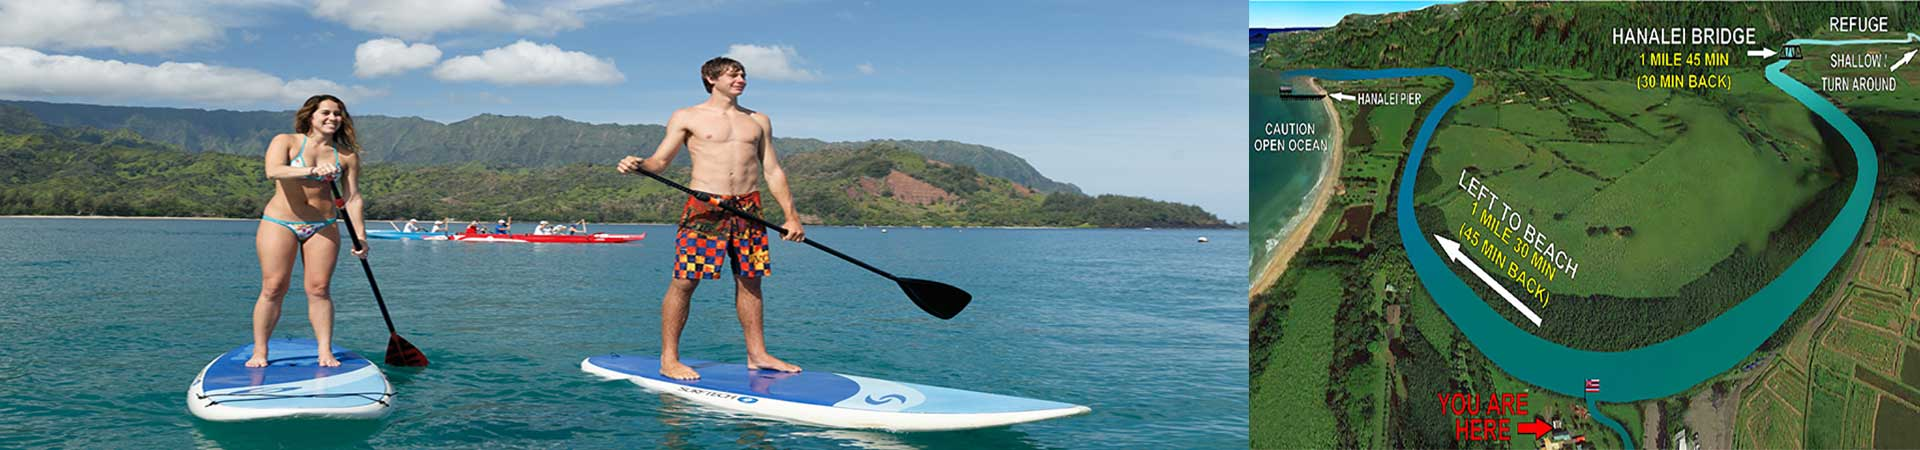 Stand Up Paddle the Hanalei Bay